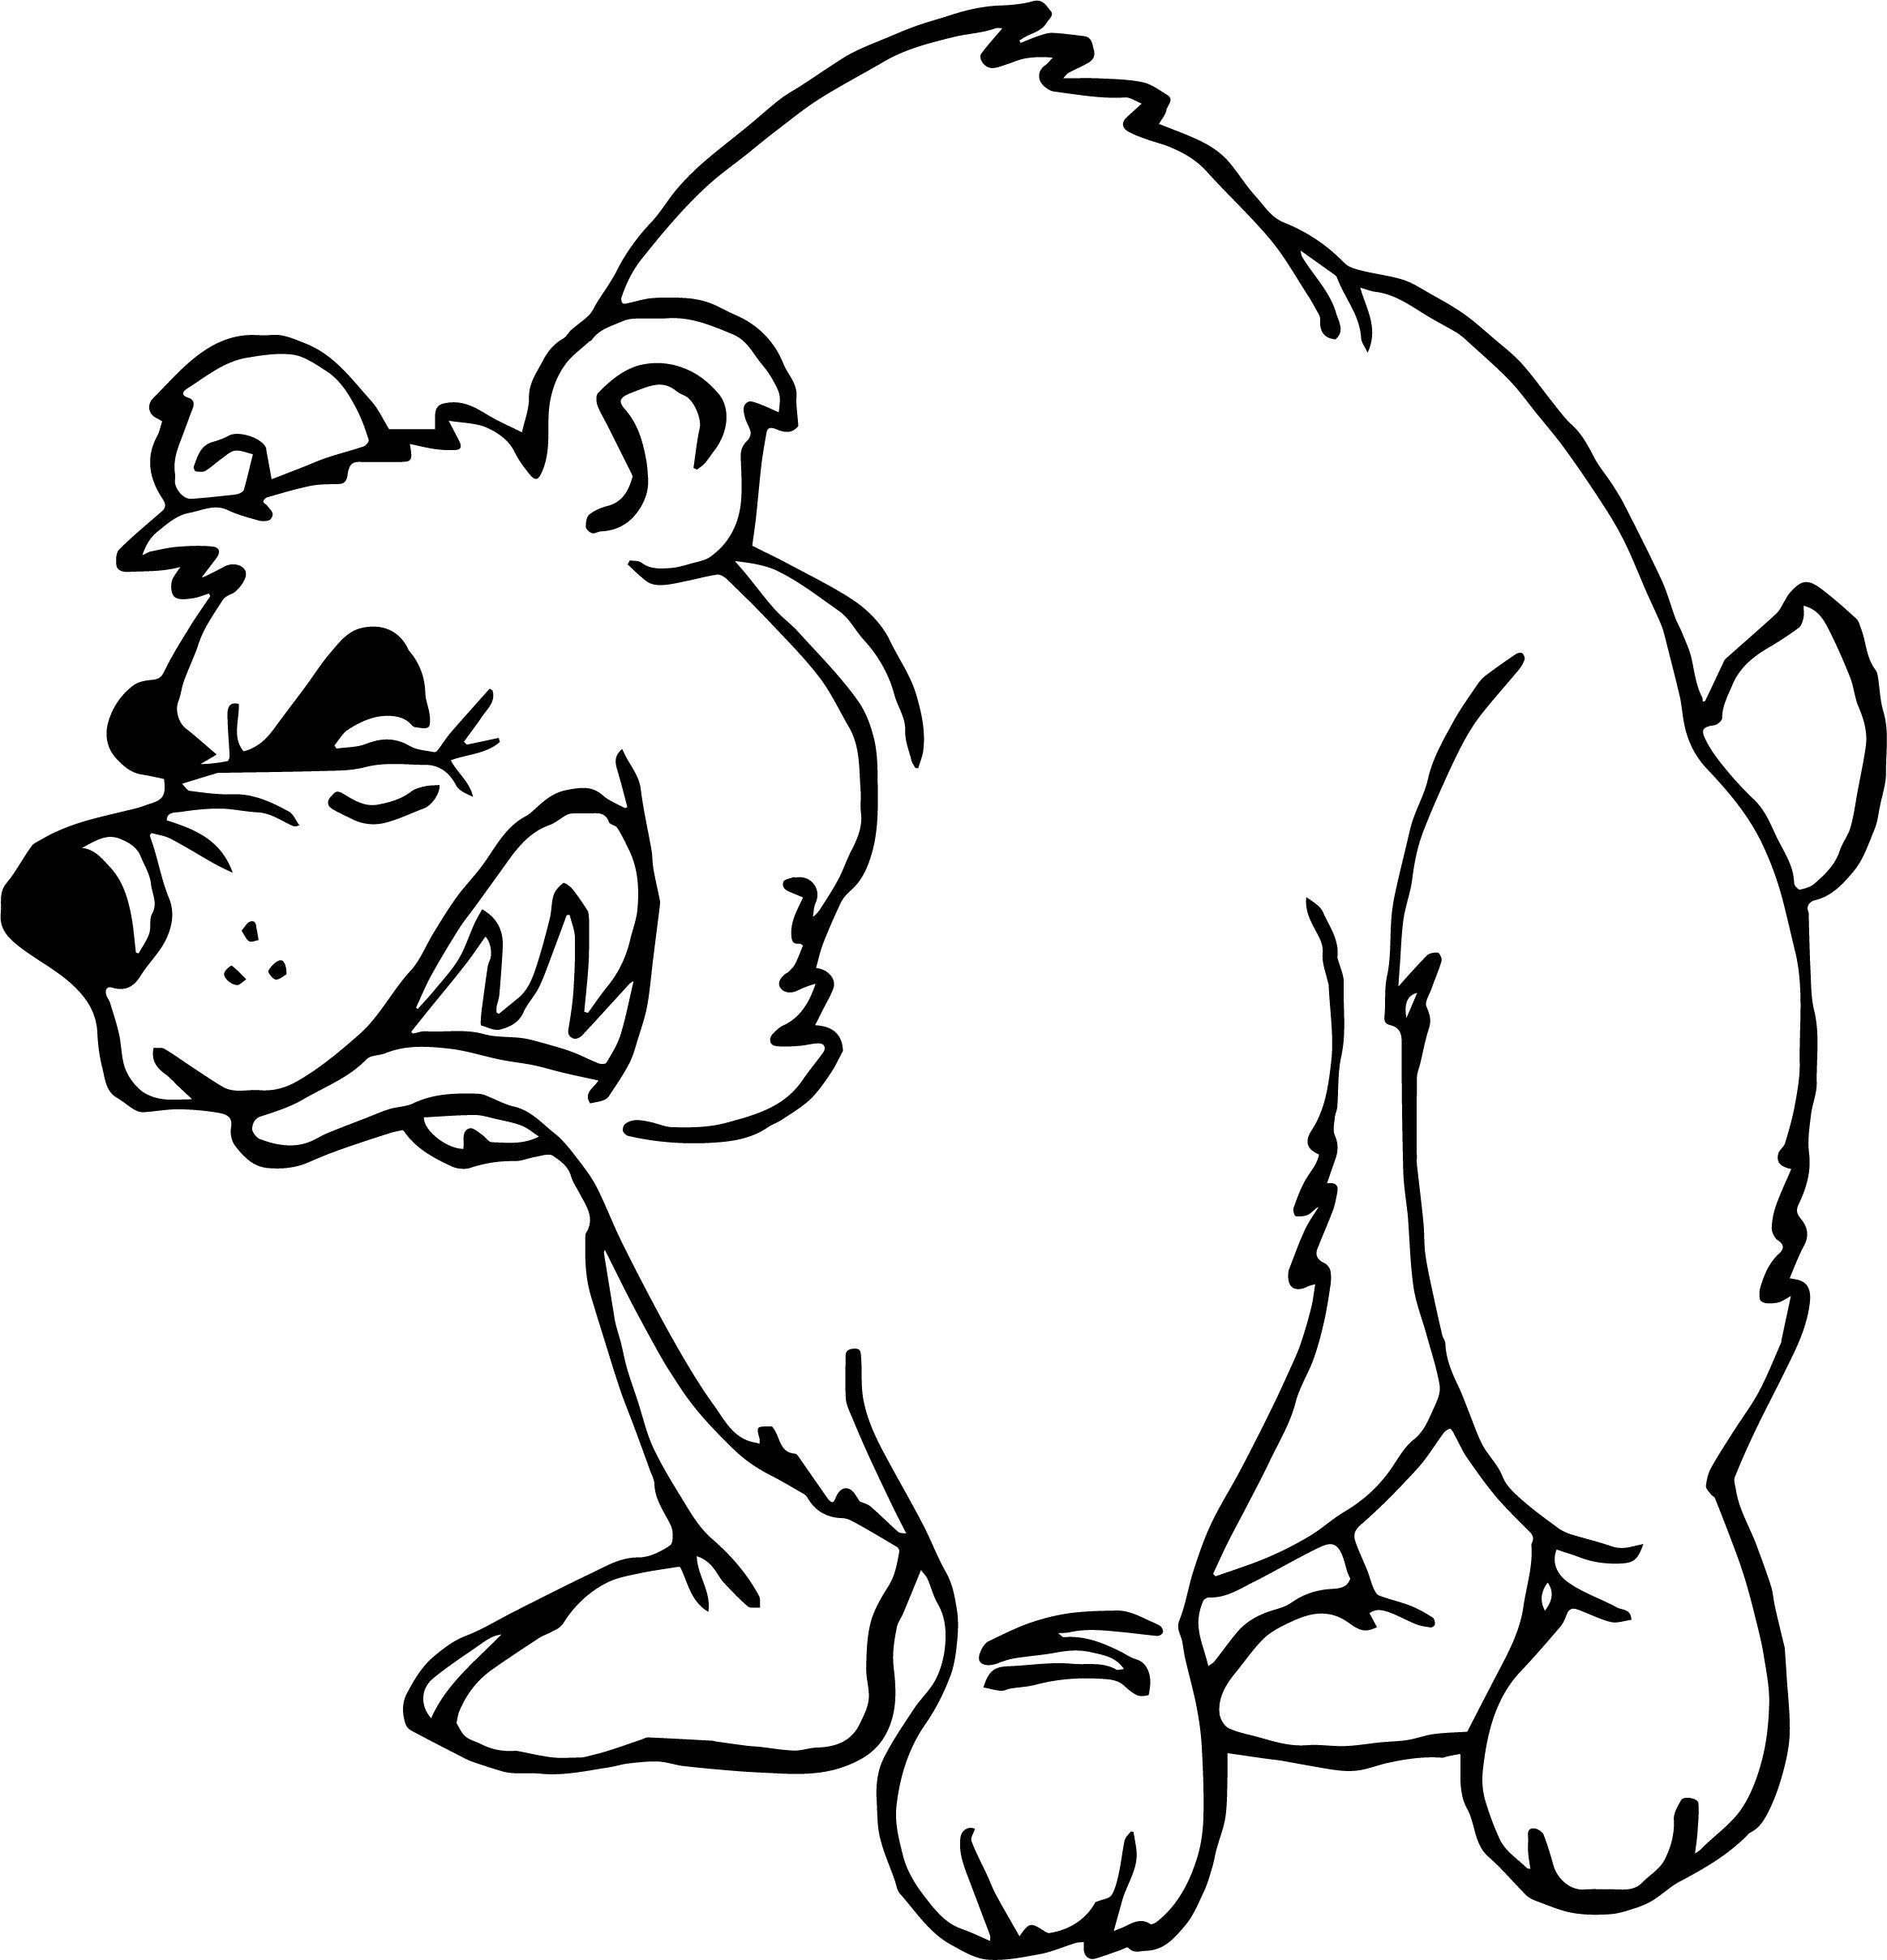 Awesome Angry Home Bear Coloring Page Panda Sketch Cartoon Sketches Bear Coloring Pages